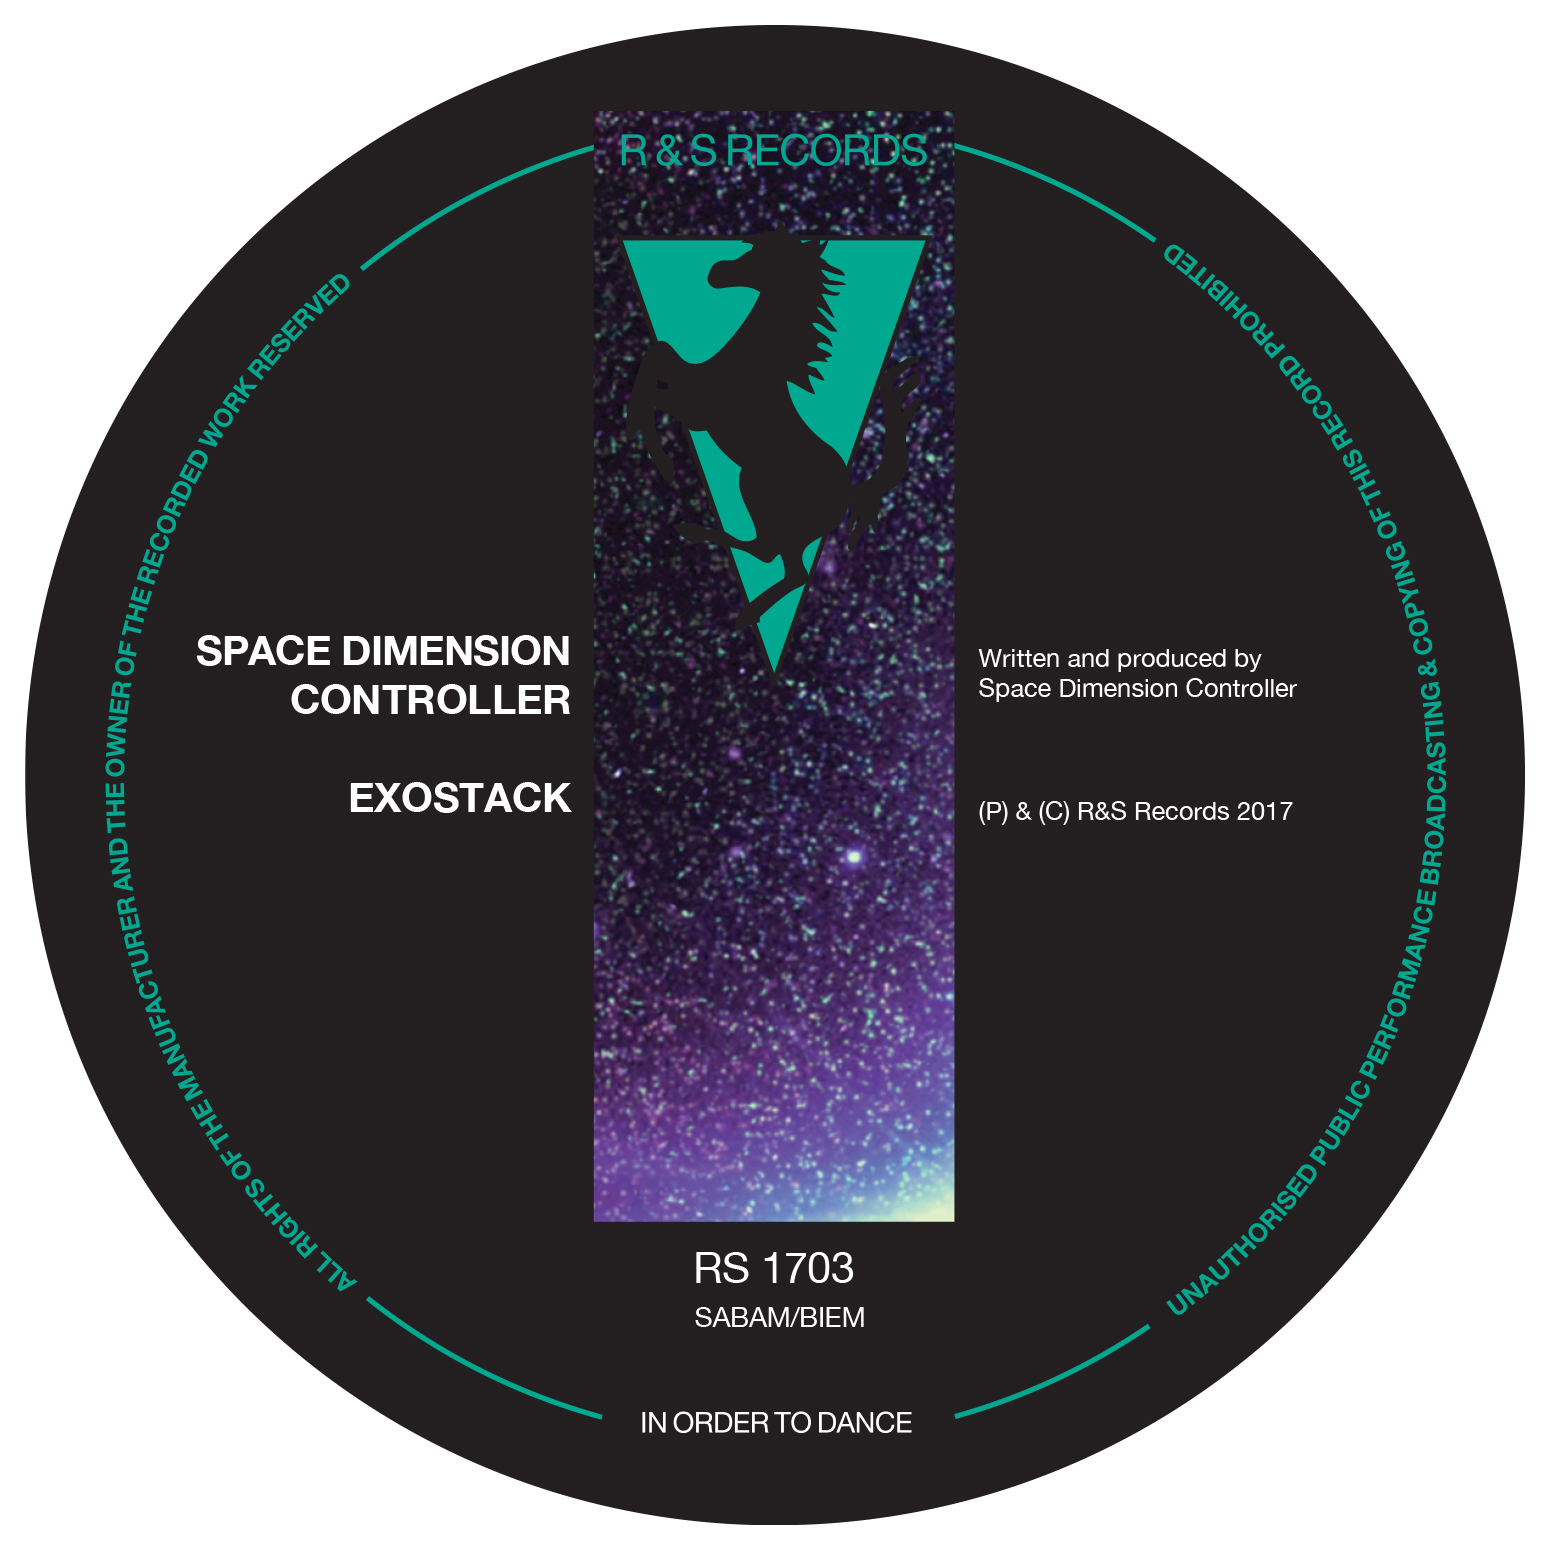 Space Dimension Controller/EXOSTACK 12""